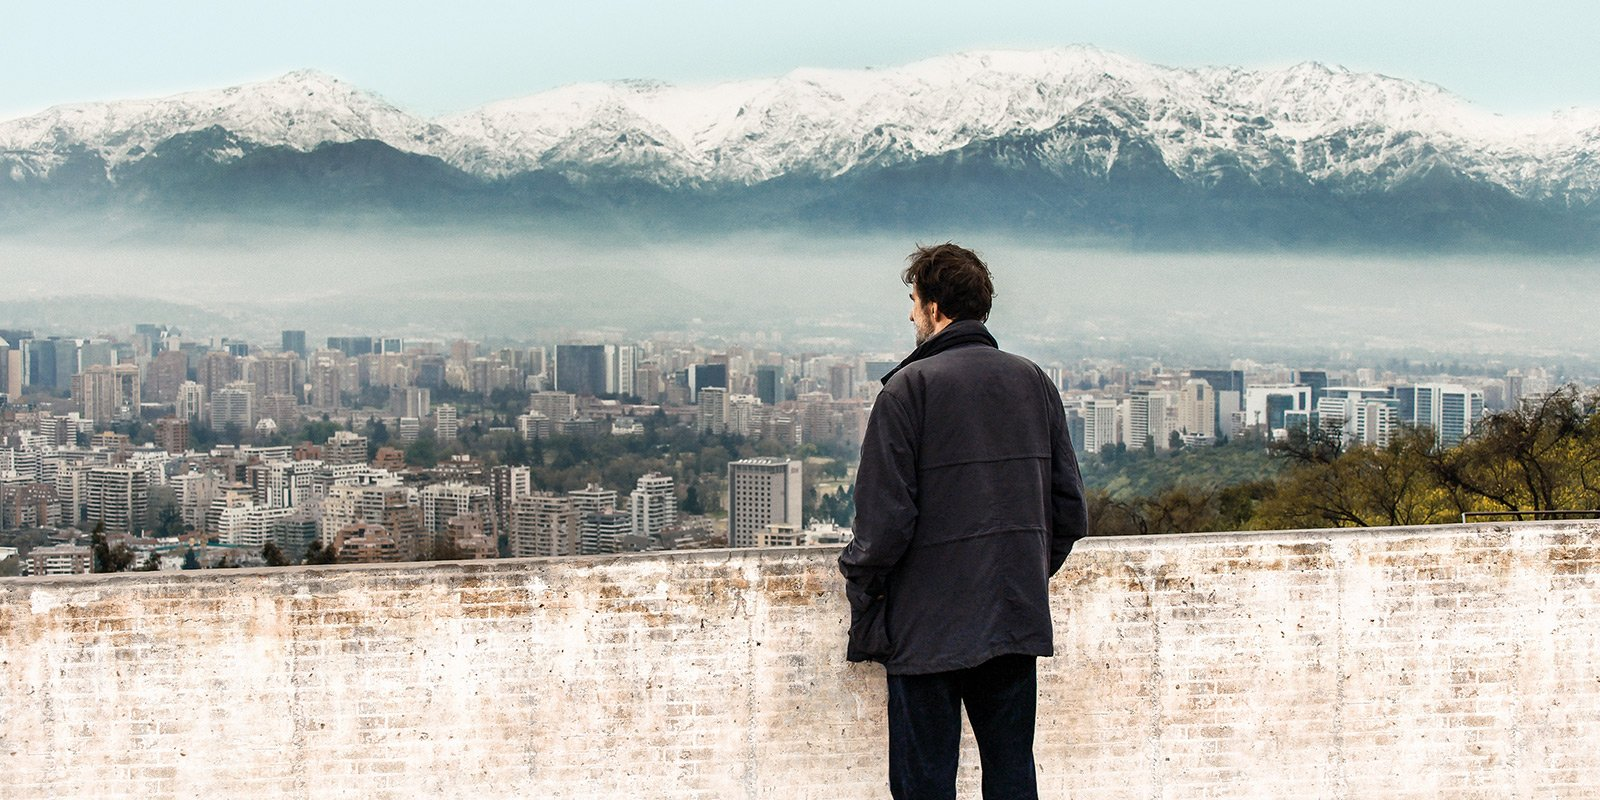 With films from Italy, VIFF has much for film enthusiasts to see